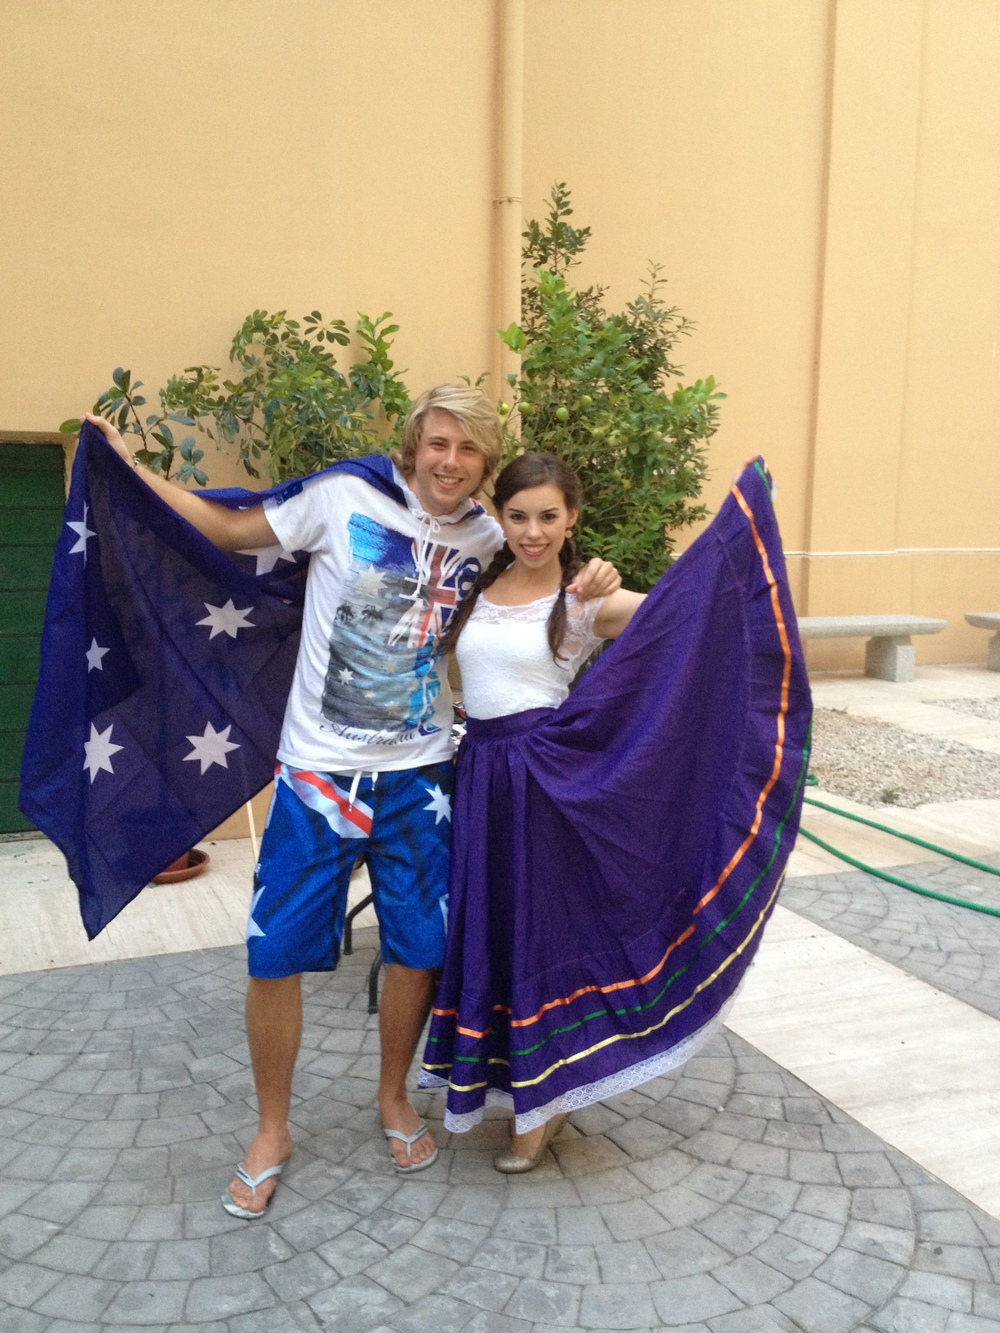 Matt and Jessica from Mexico at cultural night in Rome.